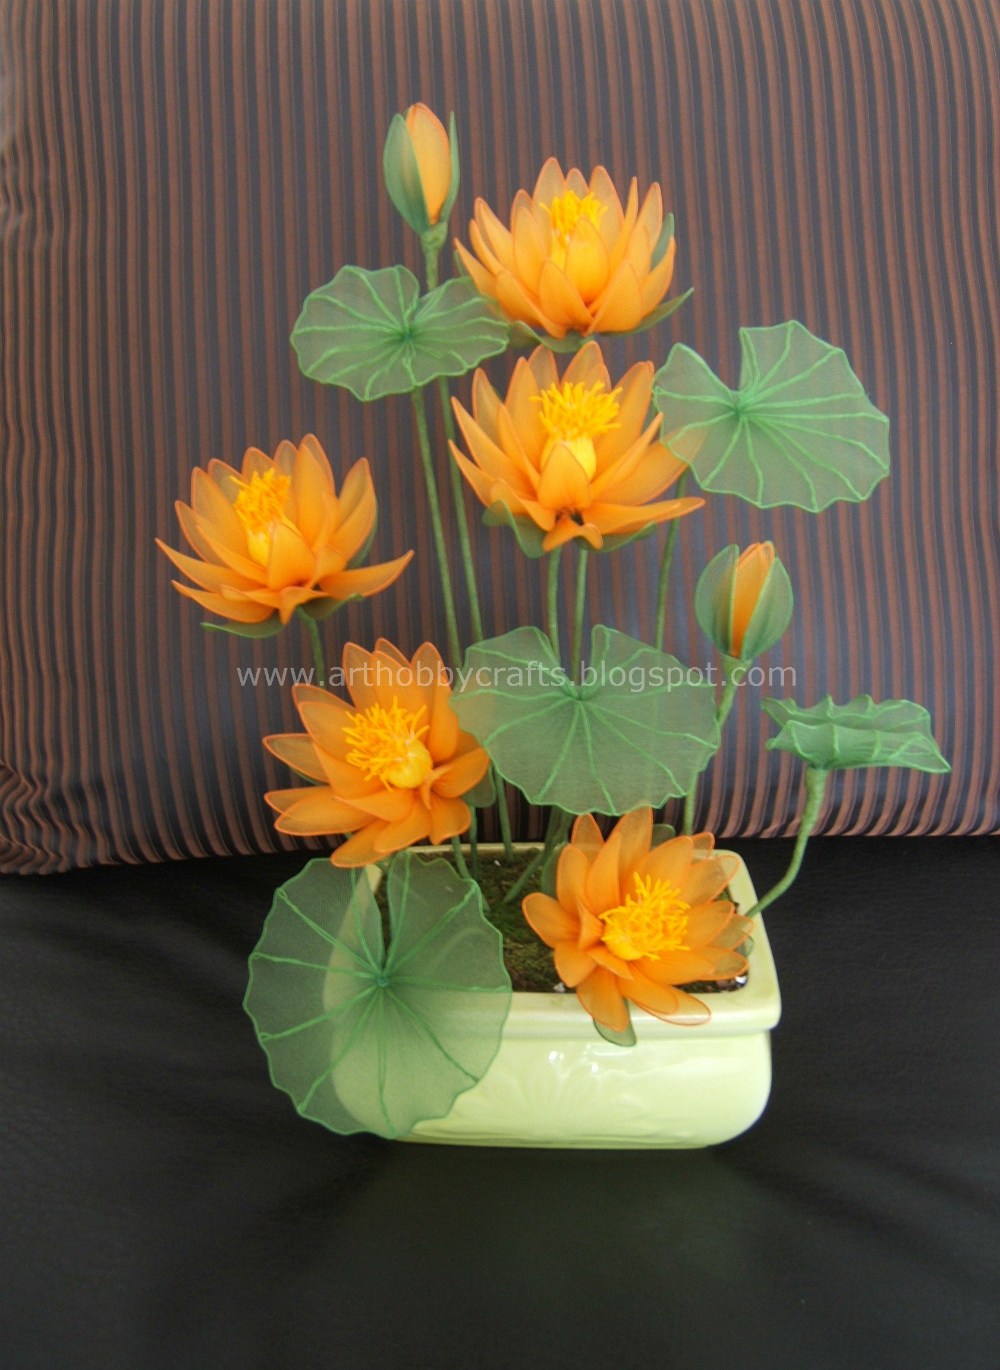 Stocking Flower Water Lily Art Hobby Crafts